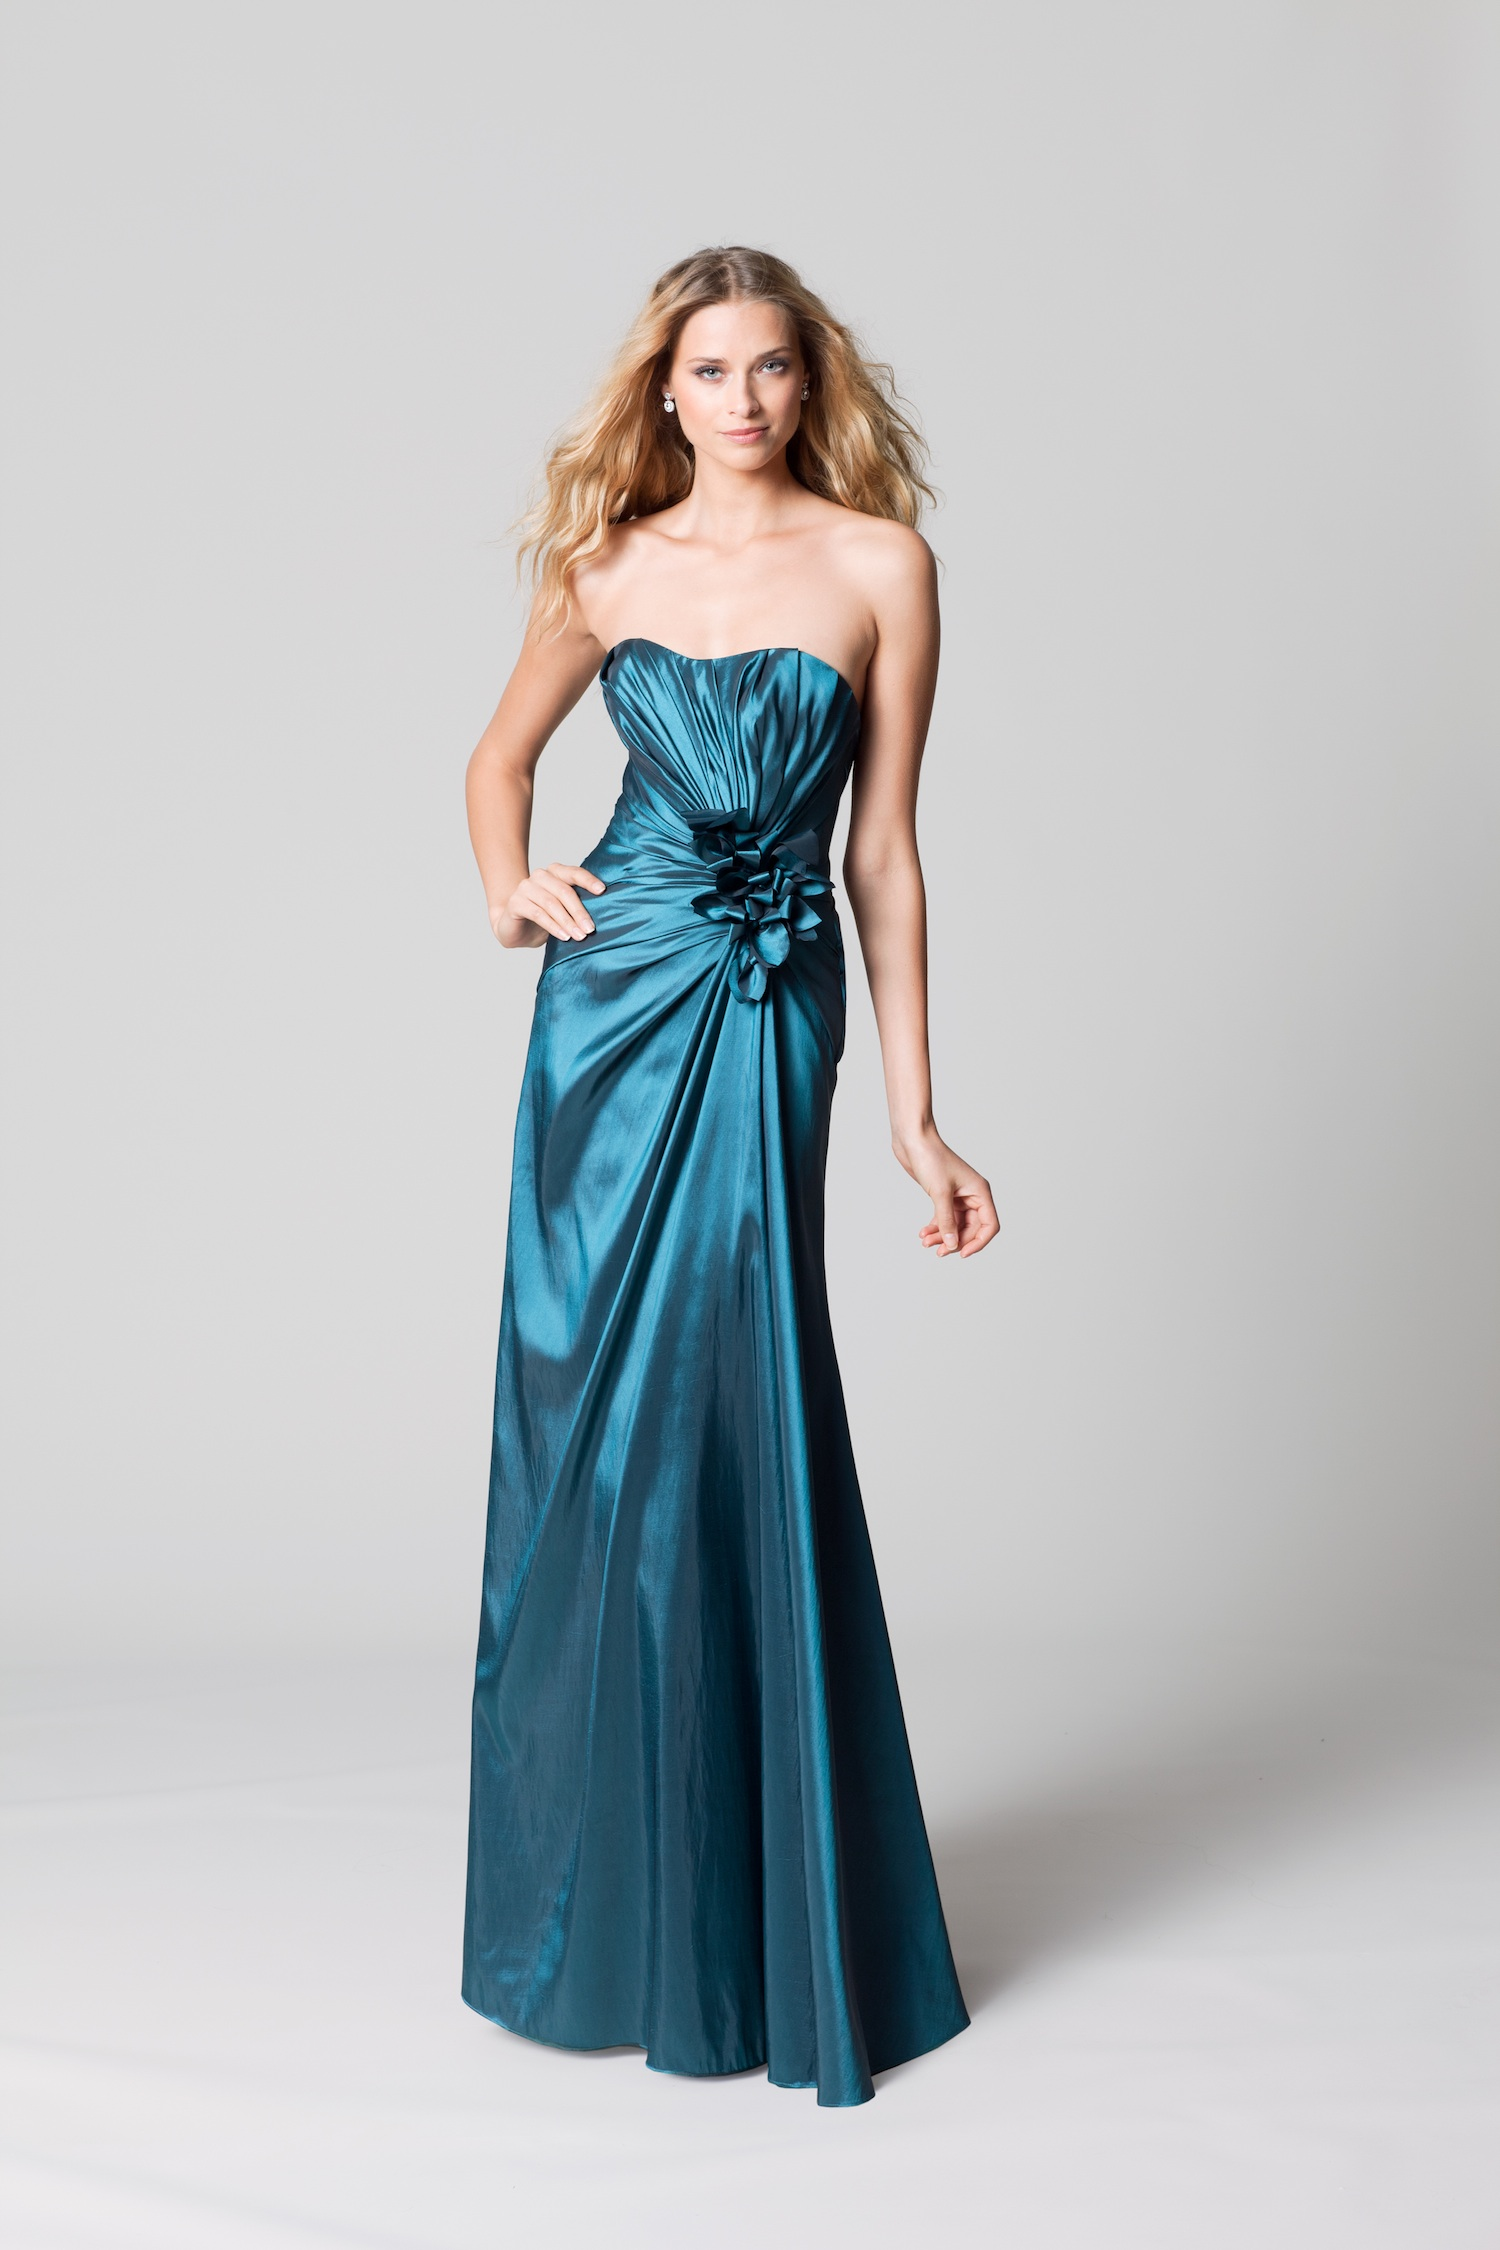 Affordable-bridesmaids-dresses-fall-2012-wtoo-by-watters-bridal-party-teal-satin-long.original